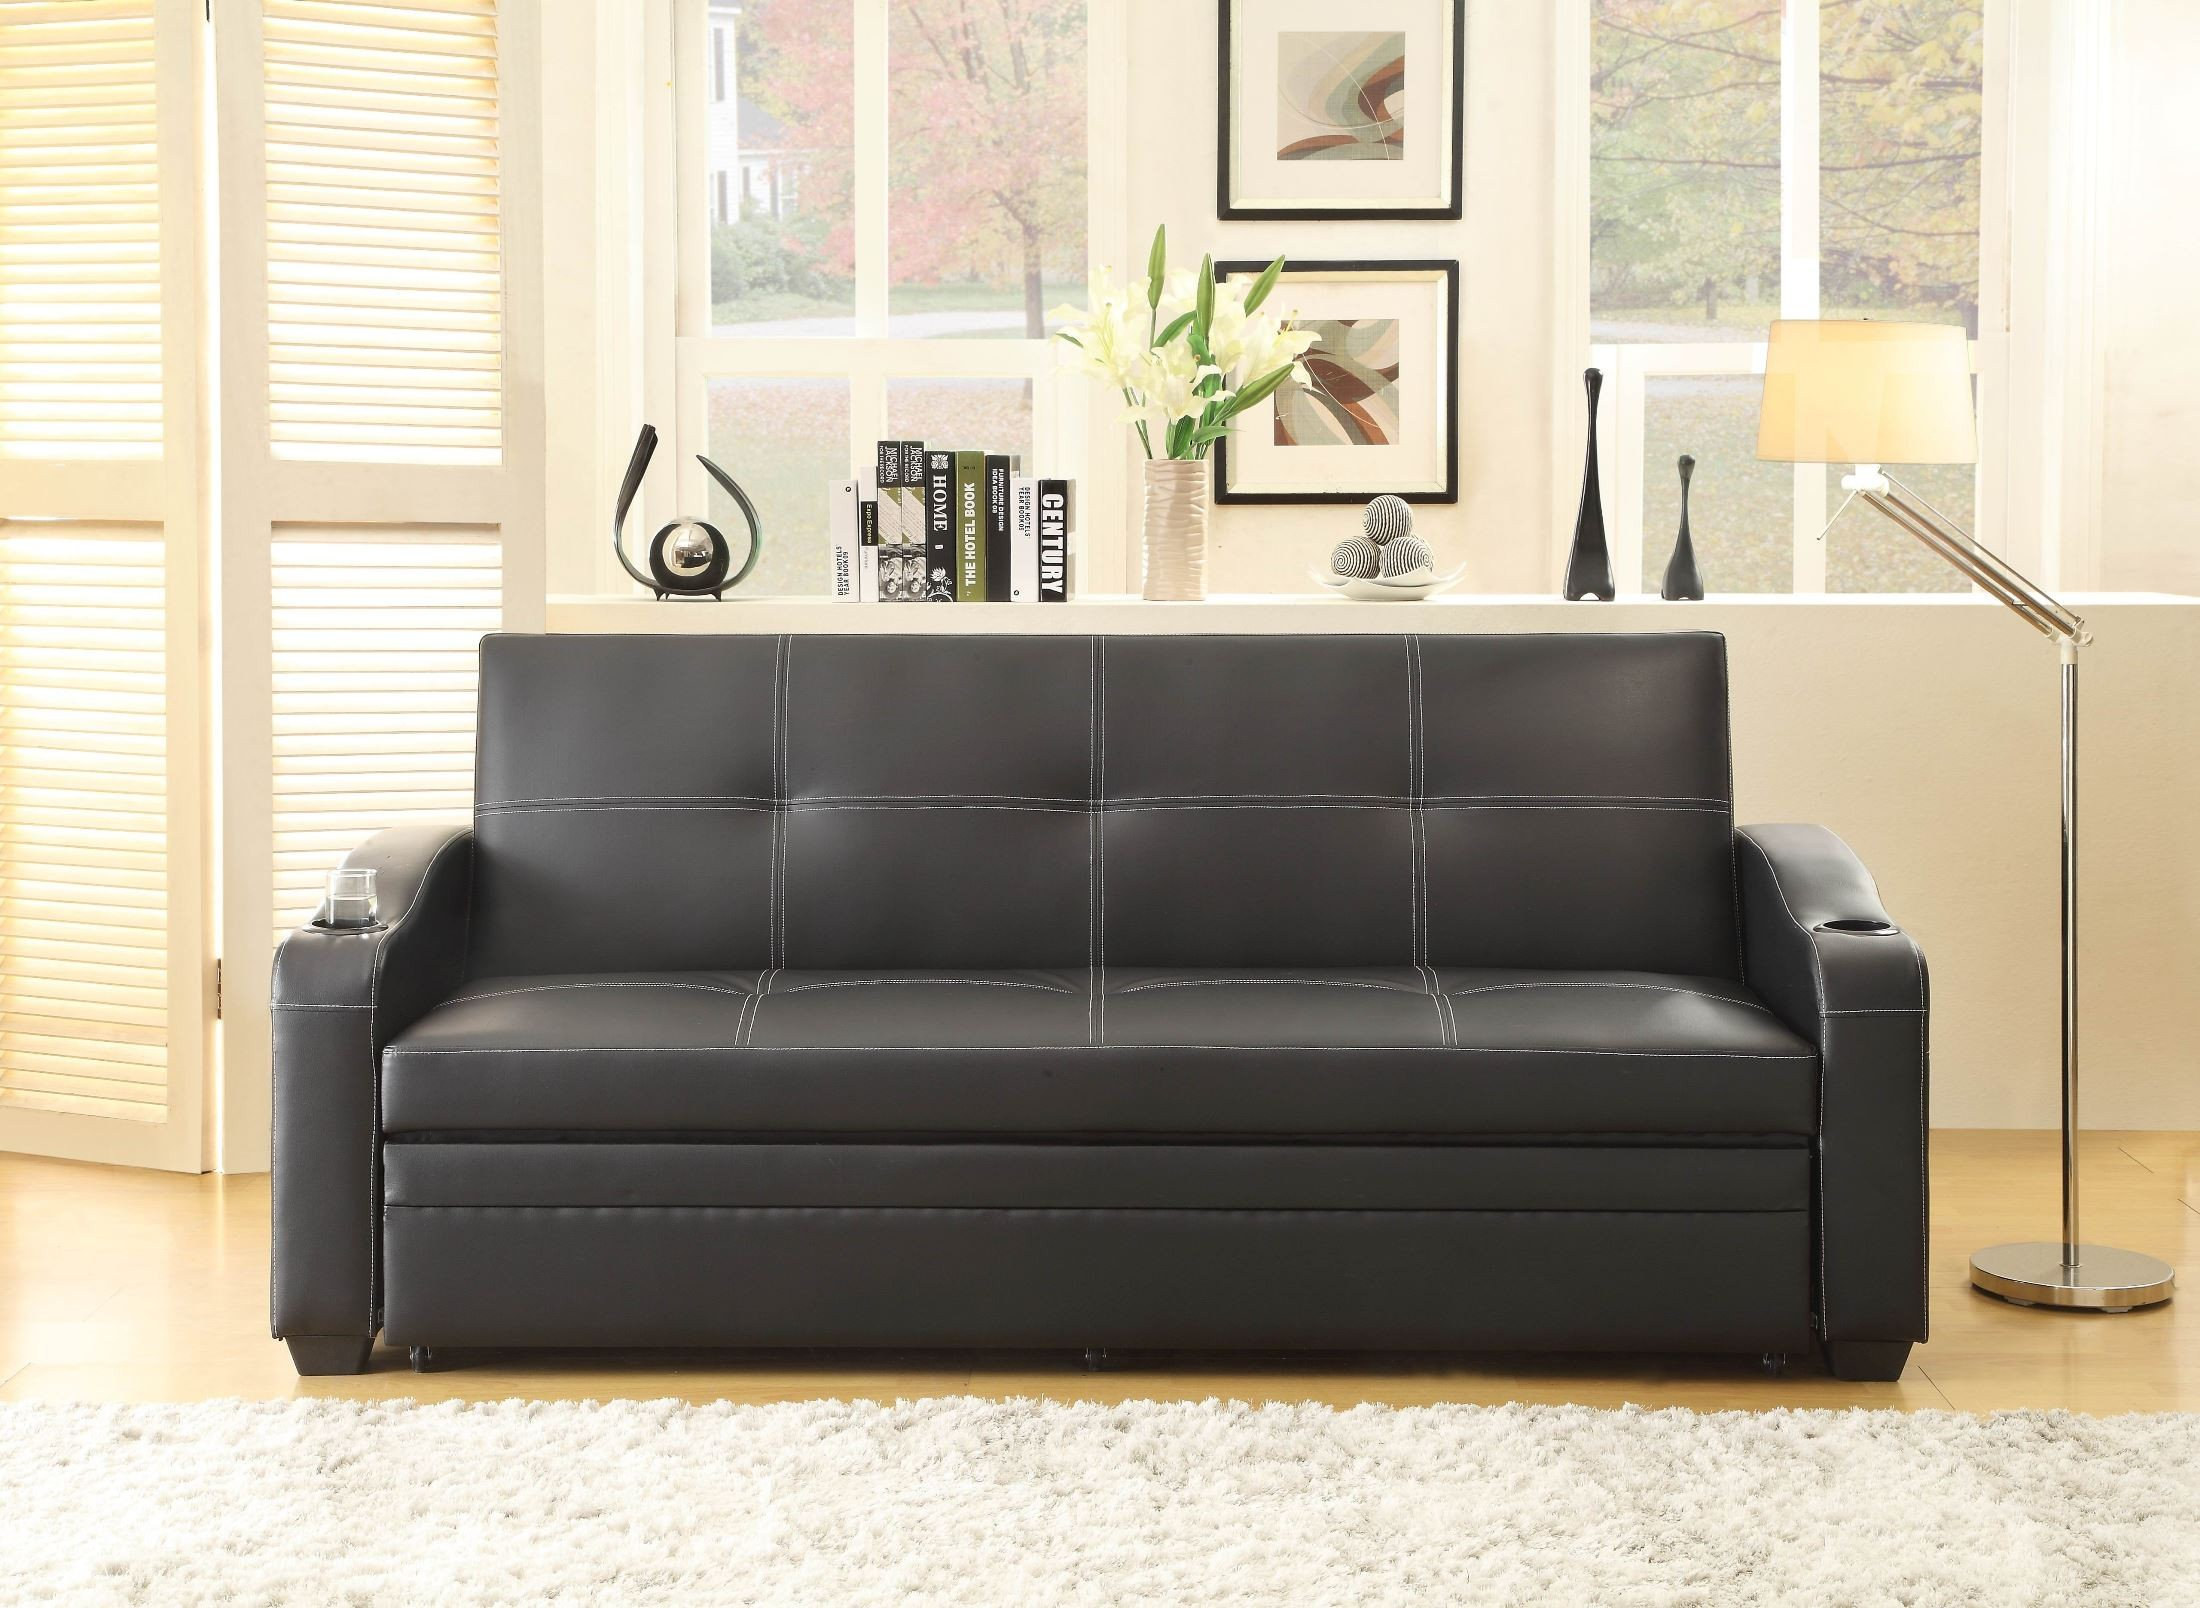 lounger sofa with pull out trundle denver leather dark taupe marcelo elegant up from